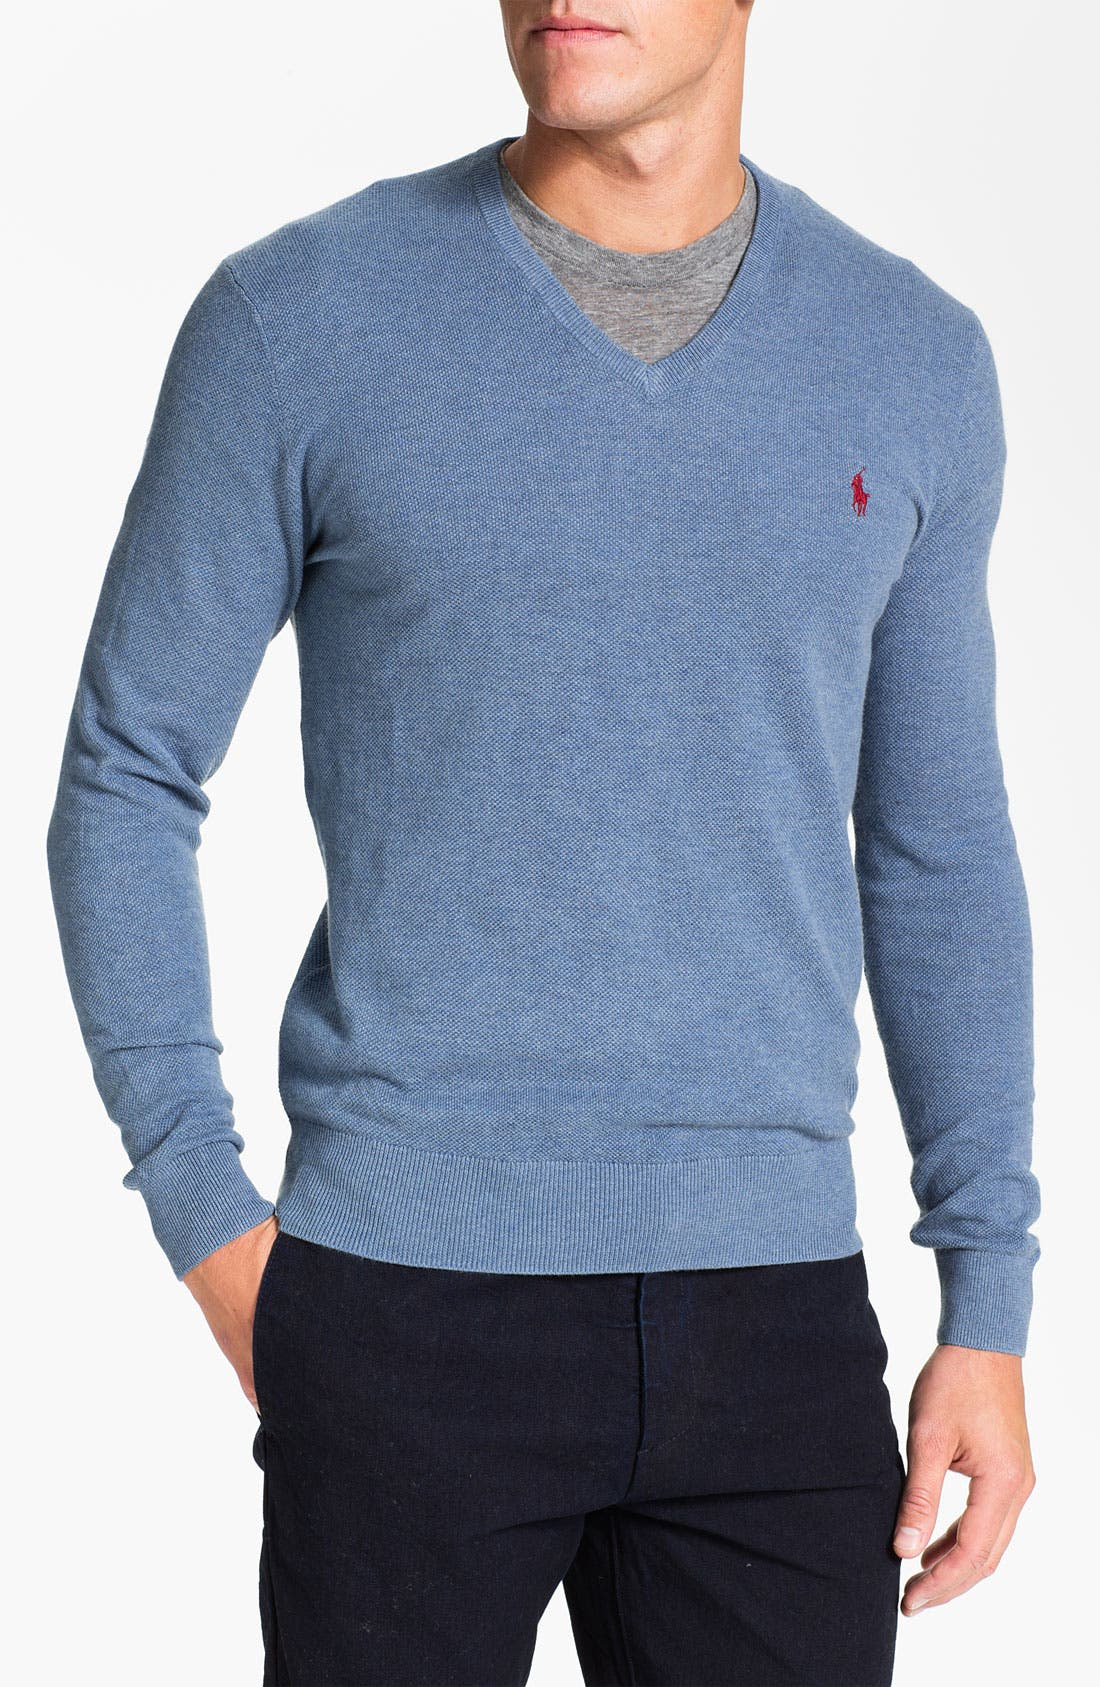 Main Image - Polo Ralph Lauren V-Neck Cotton & Cashmere Classic Fit Sweater